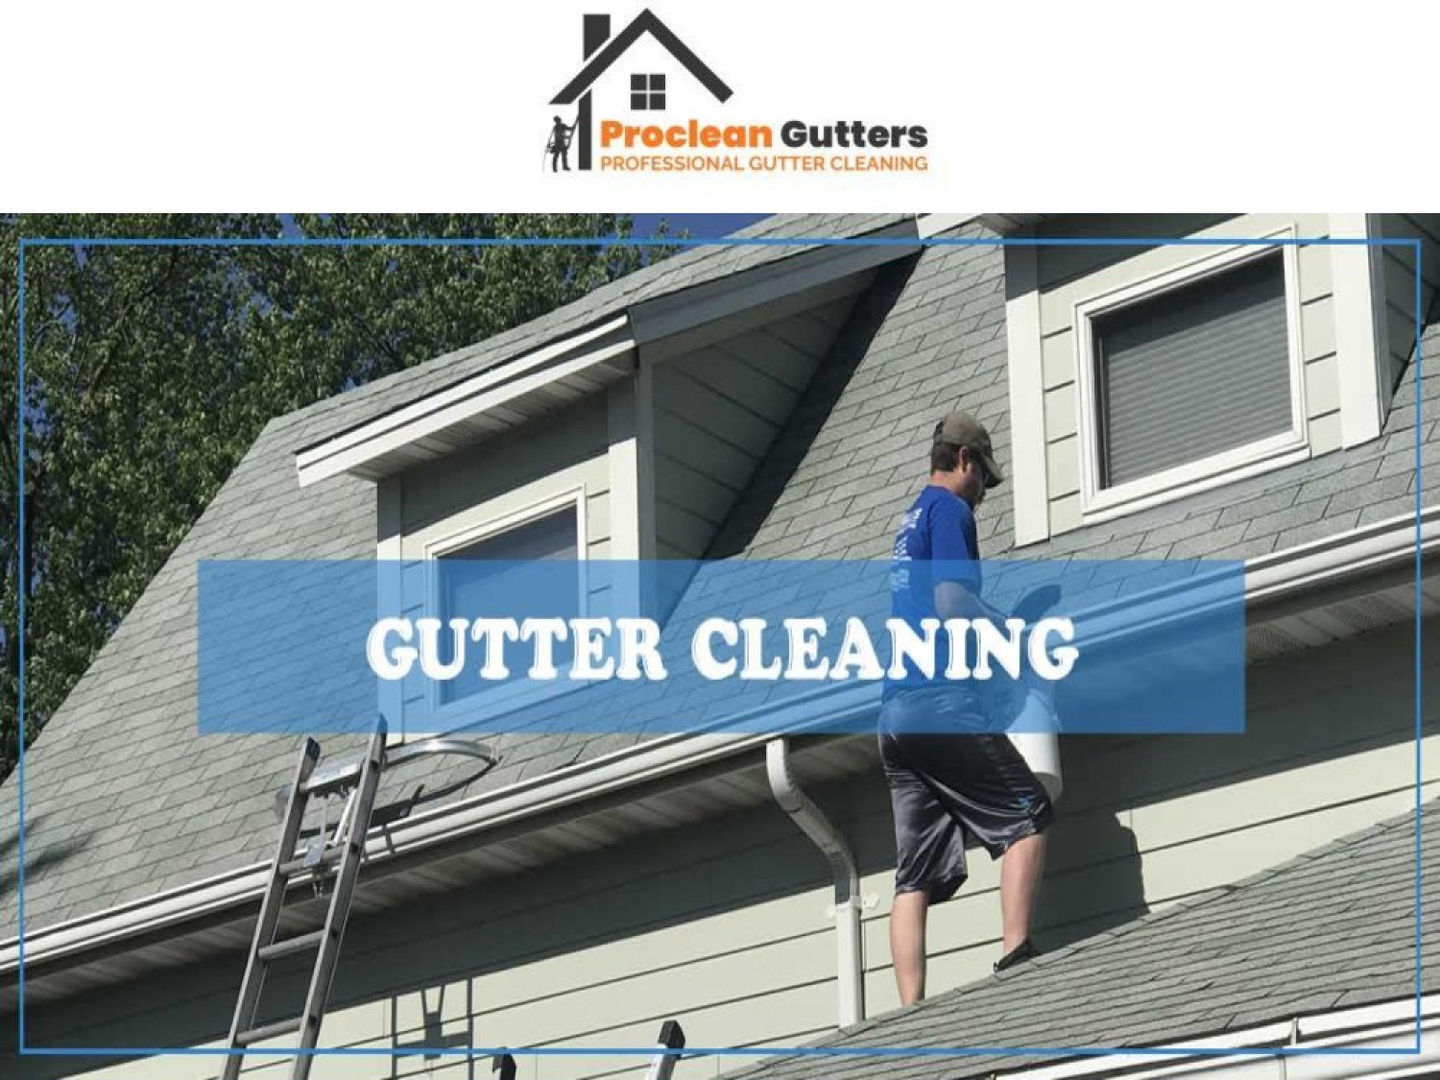 Guide To Understand Professional Gutter Cleaning Services Essex In Better Ways